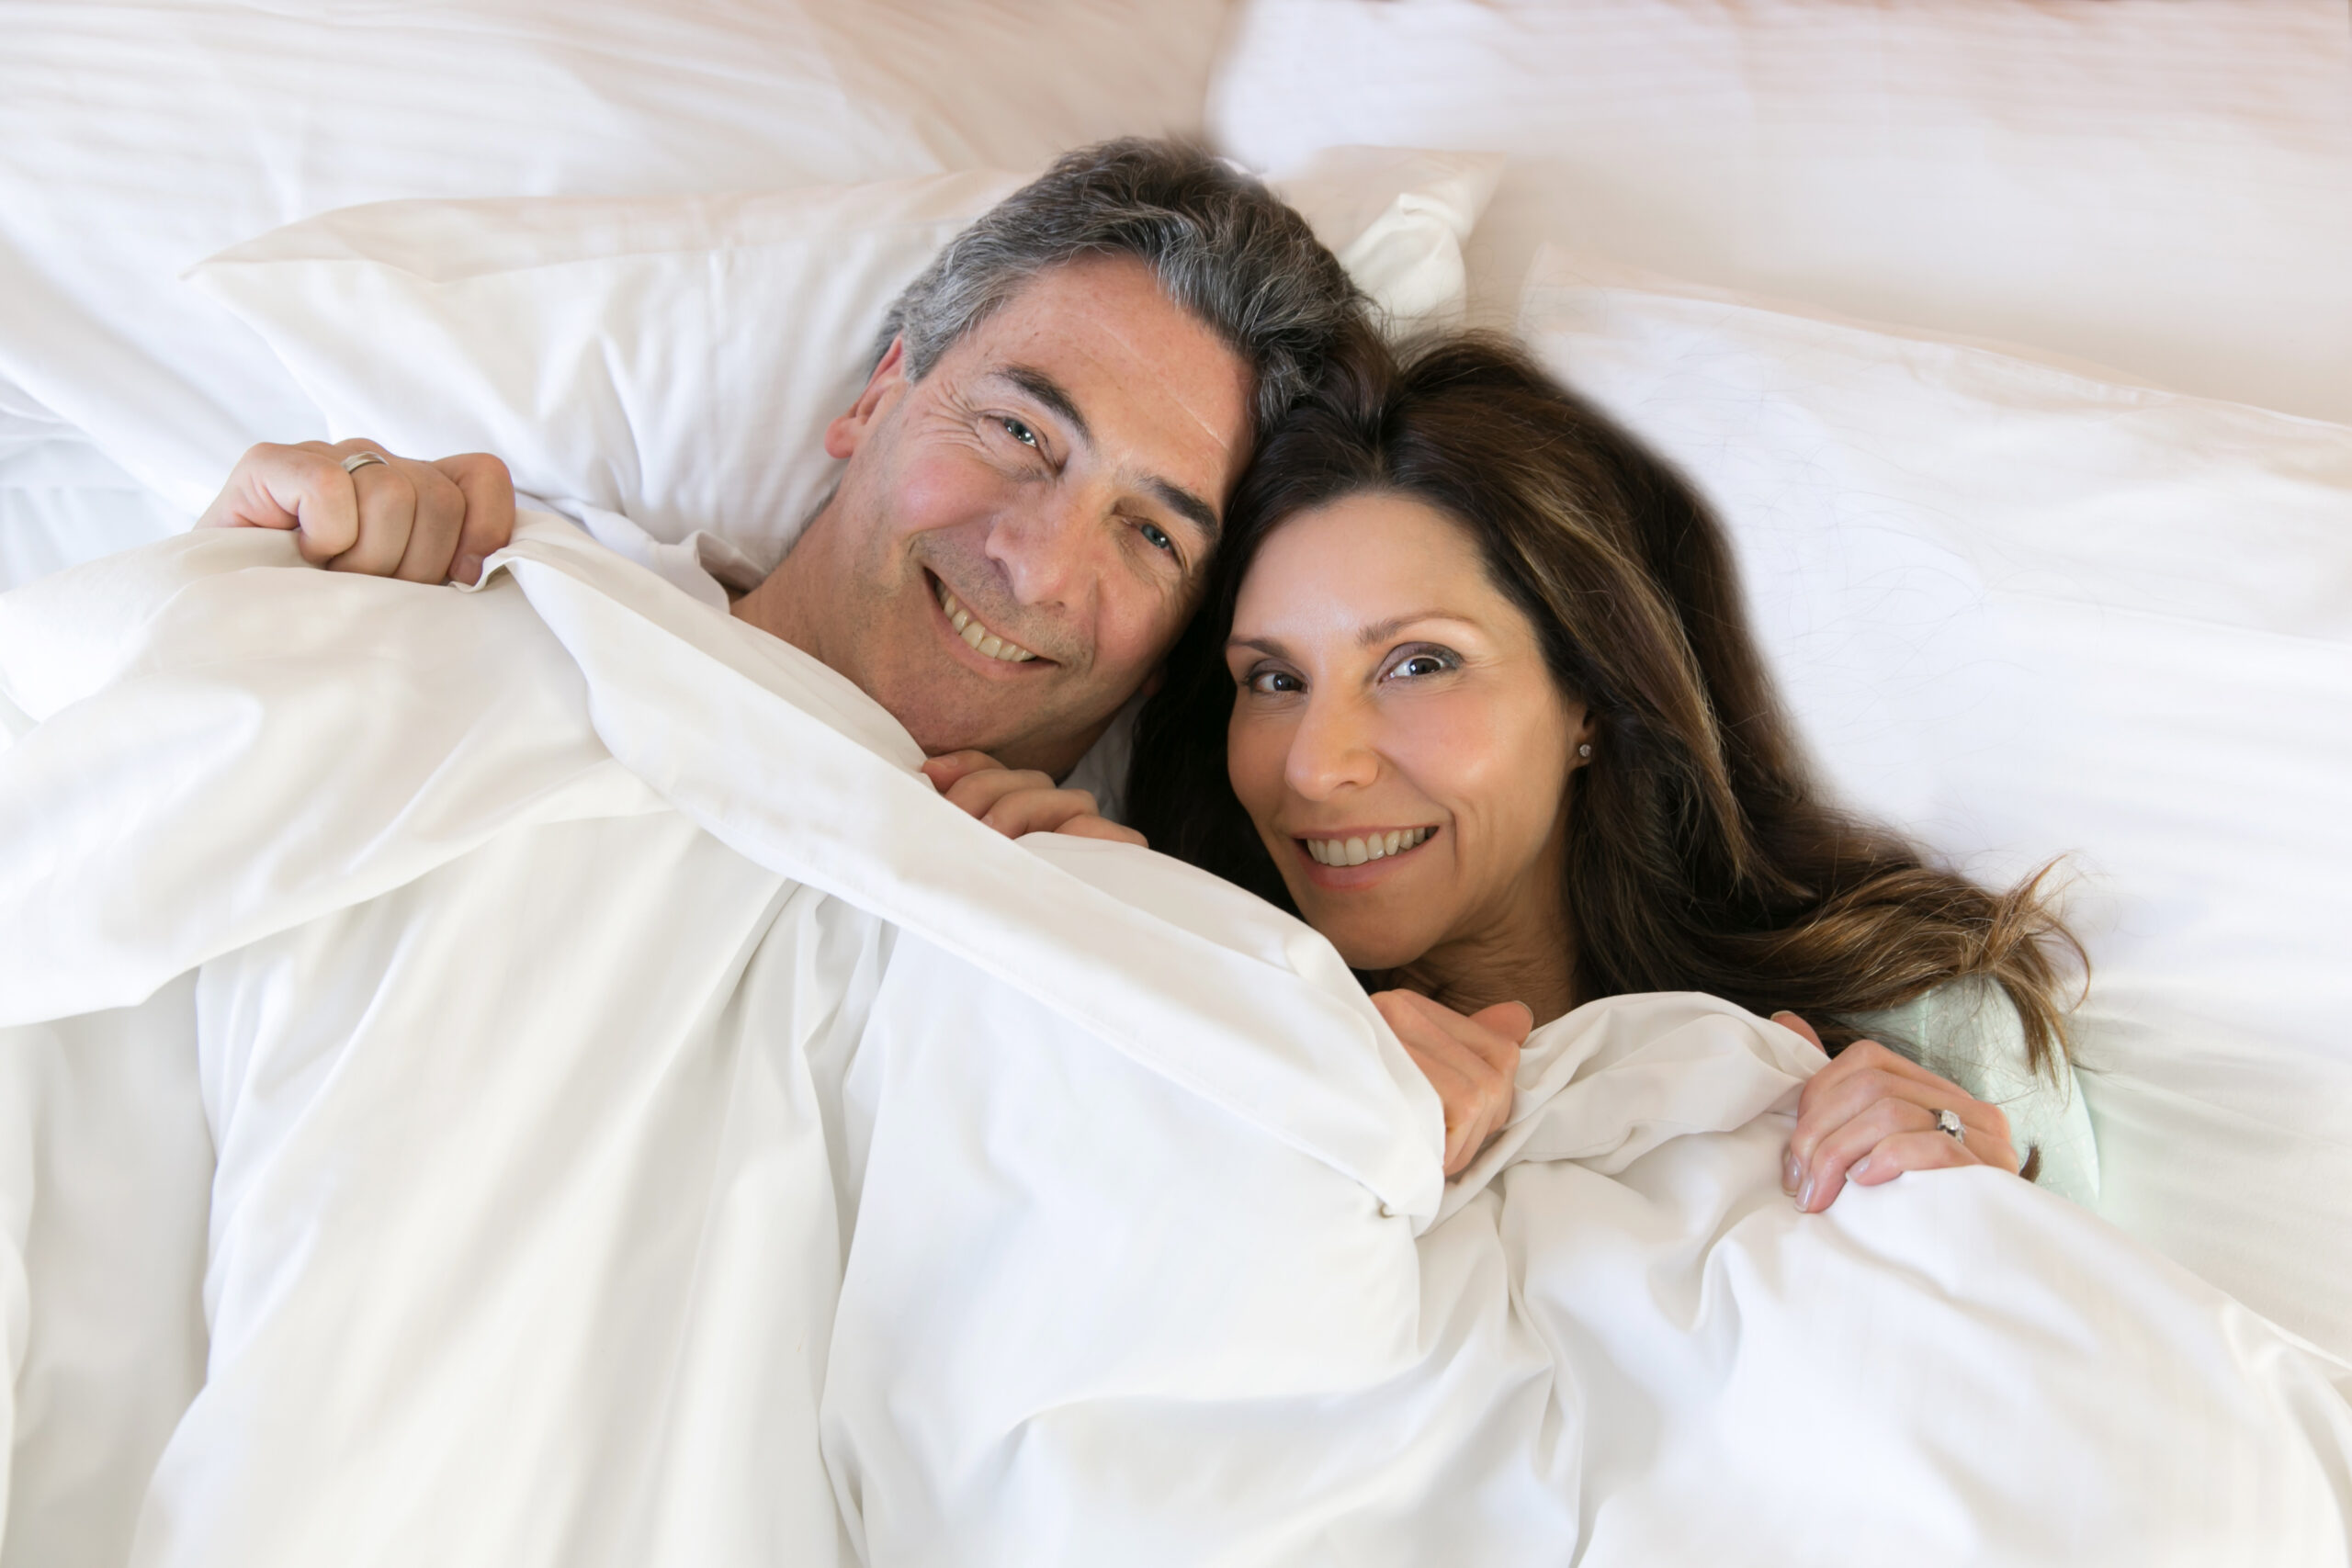 A.Vogel's Prostate 1 can offer some sexual healing